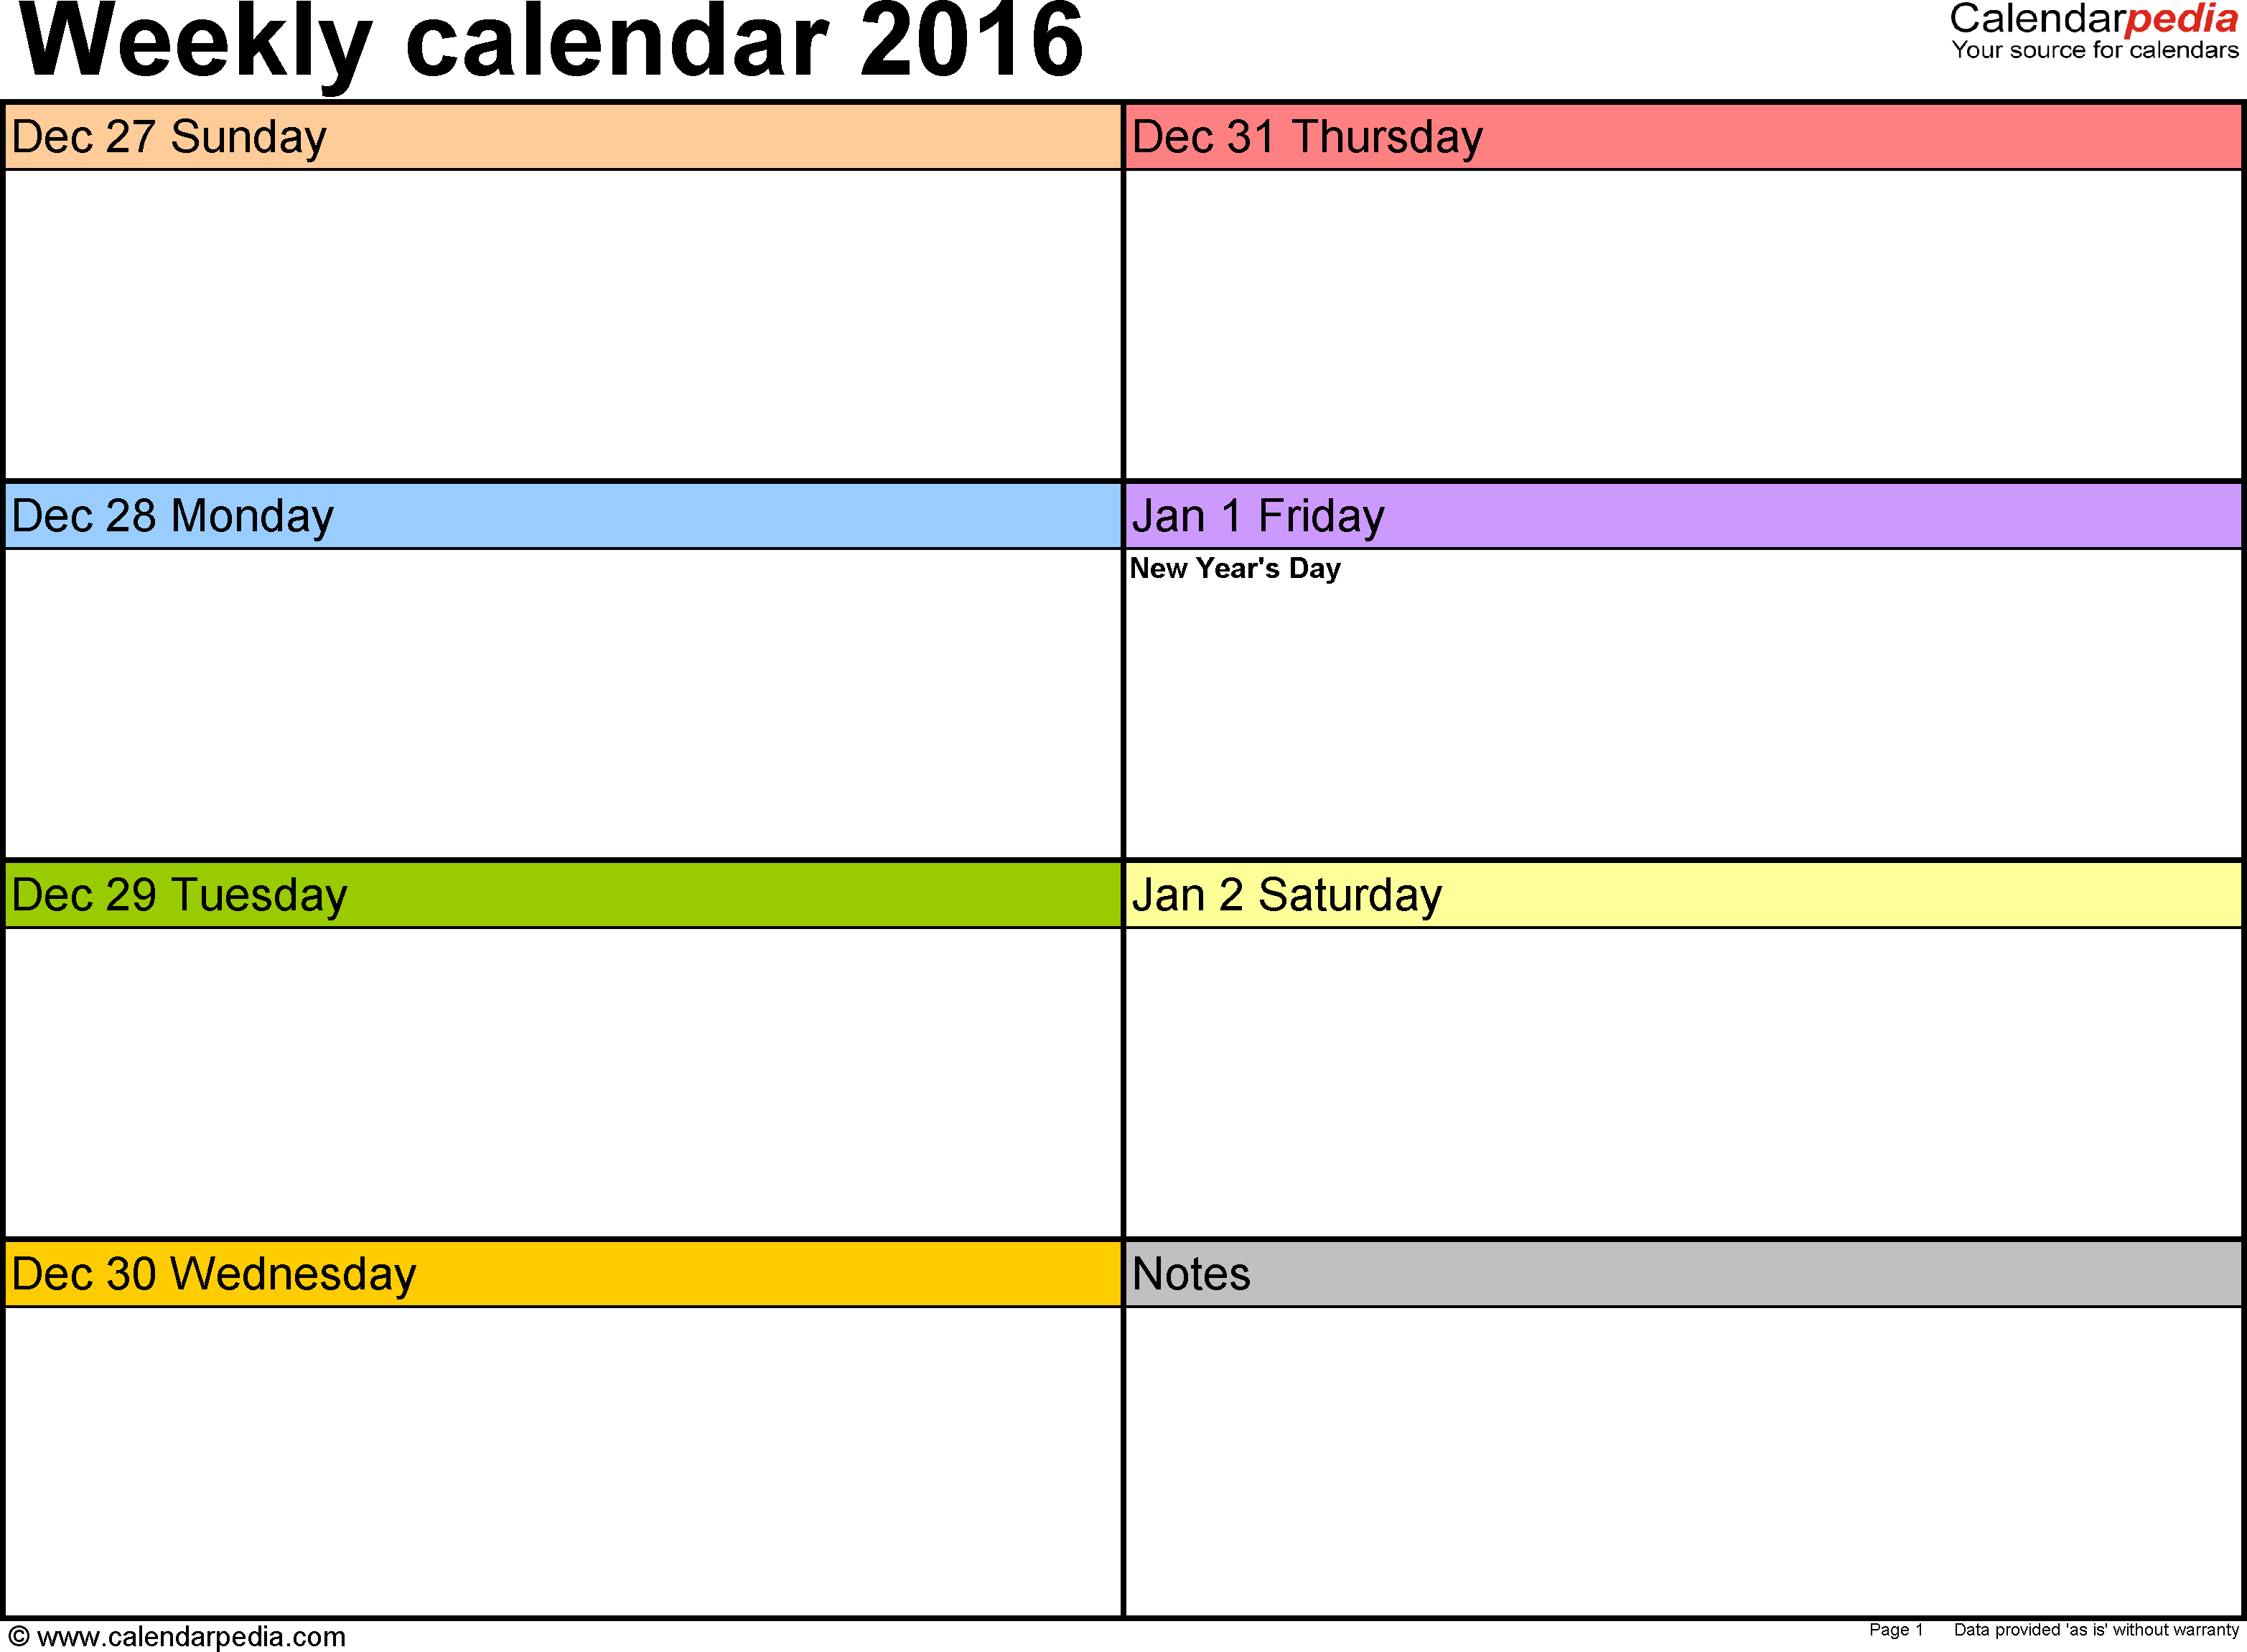 Weekly Calendar 2016 For Word - 12 Free Printable Templates with Empty Calendar Template For Kids